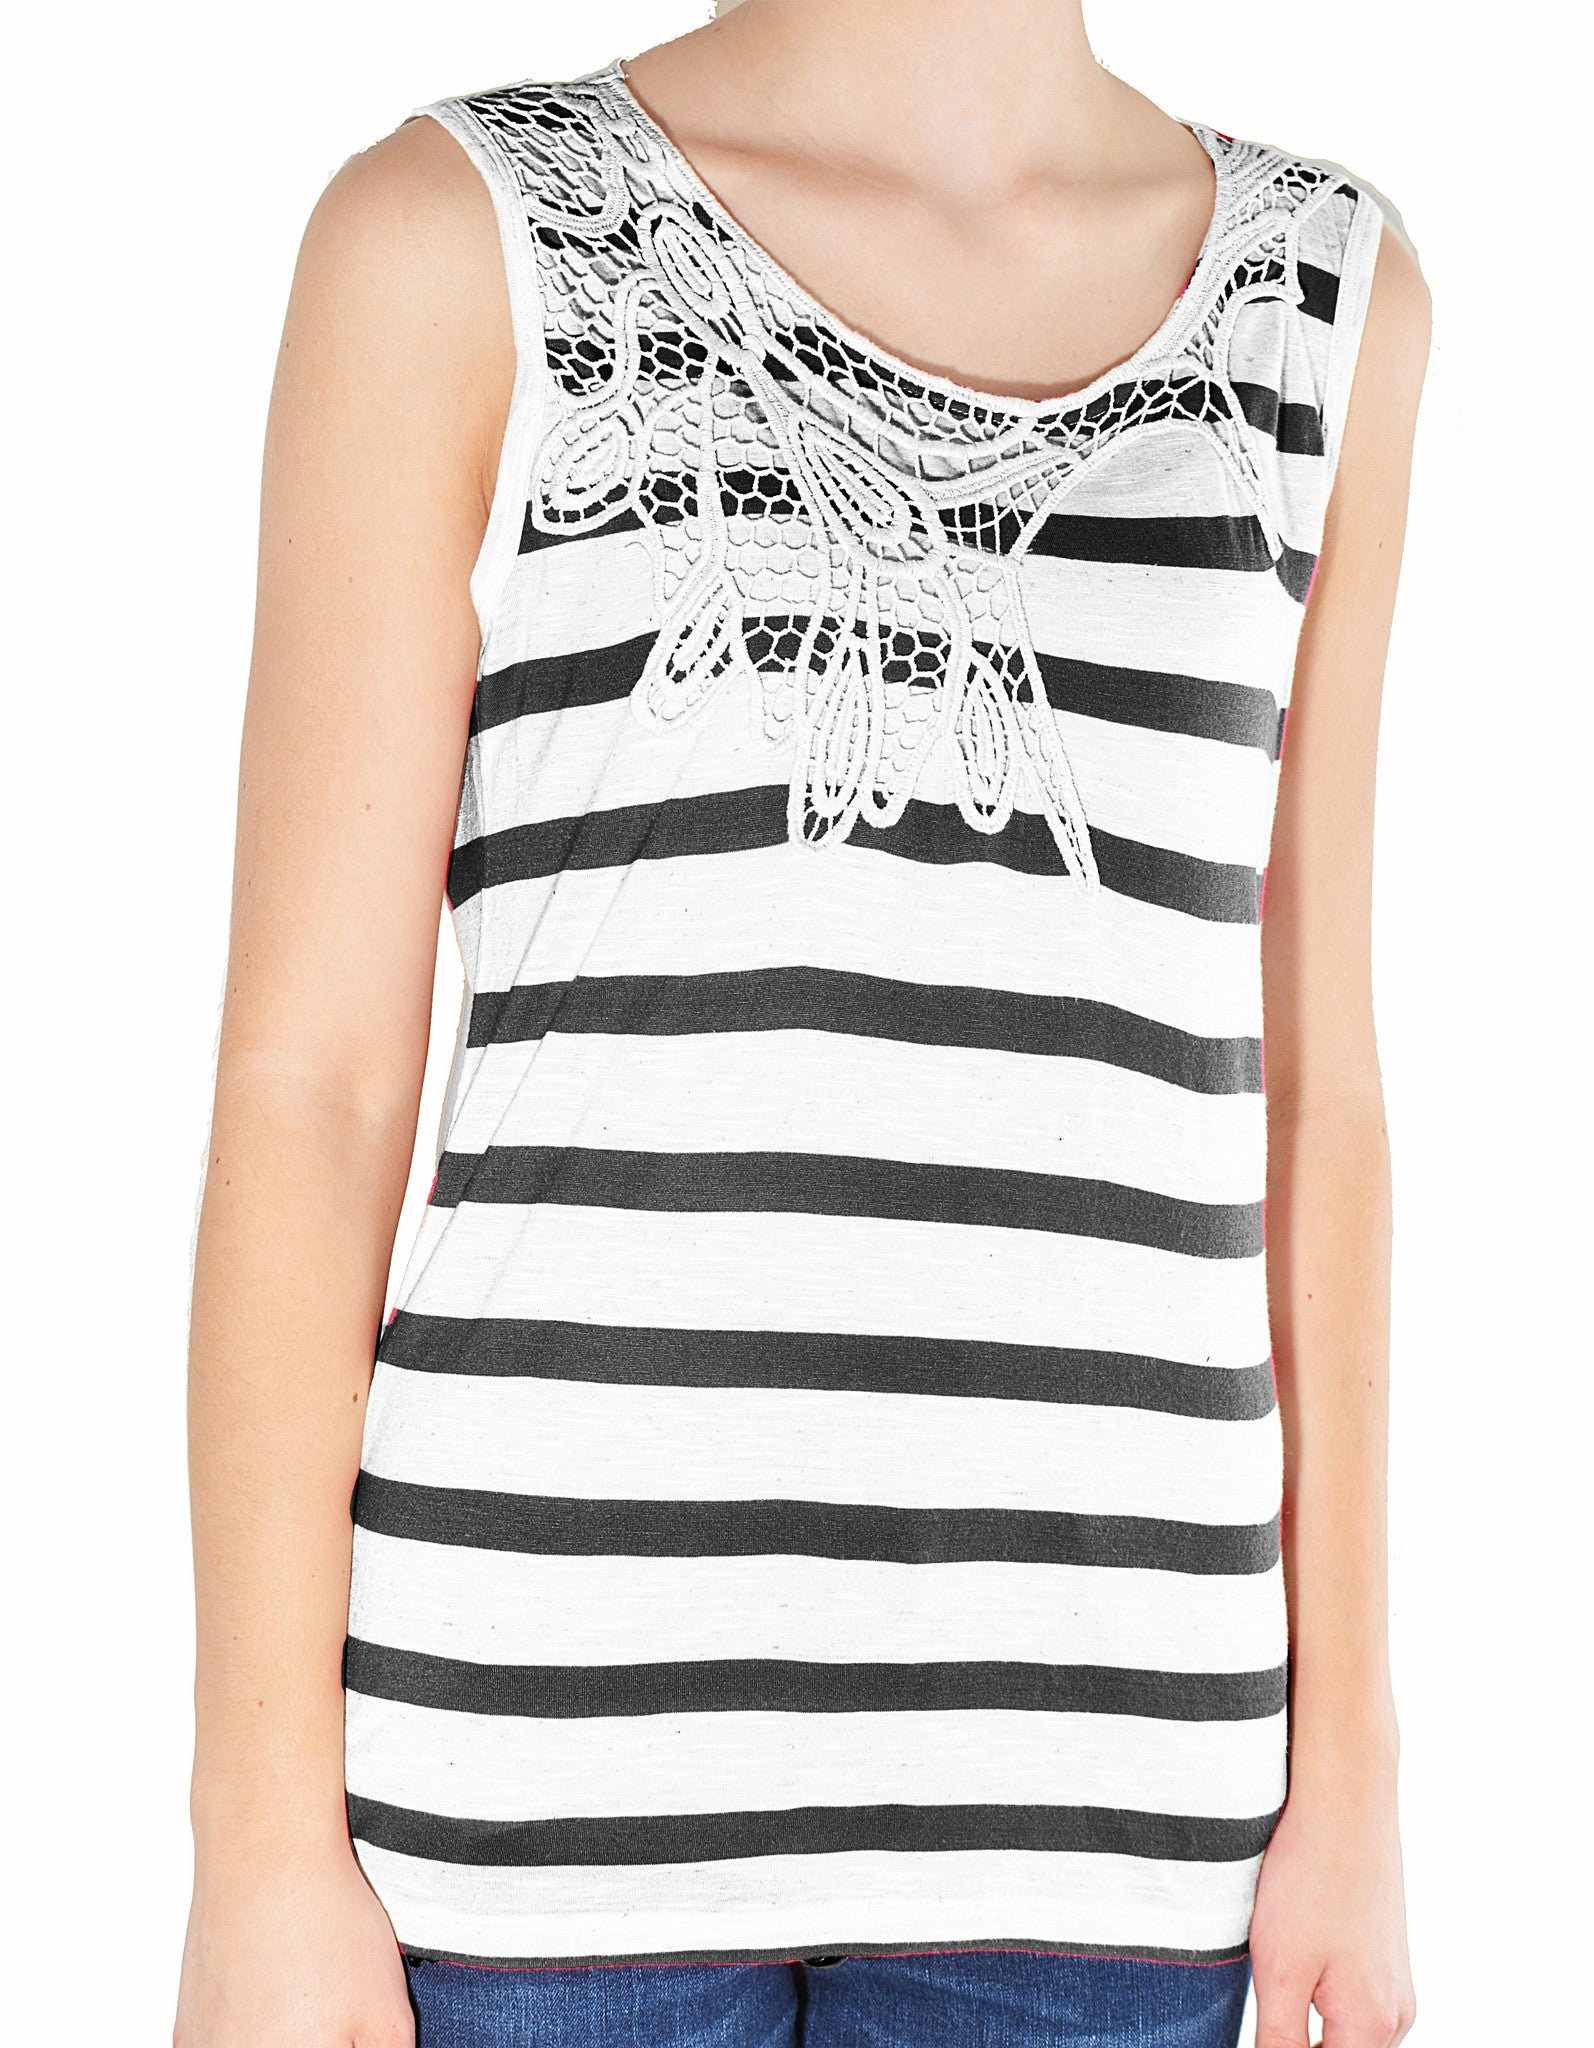 Po Pori Womens Striped Tank Top (Black White),Shirts,Po Pori - Discount Divas